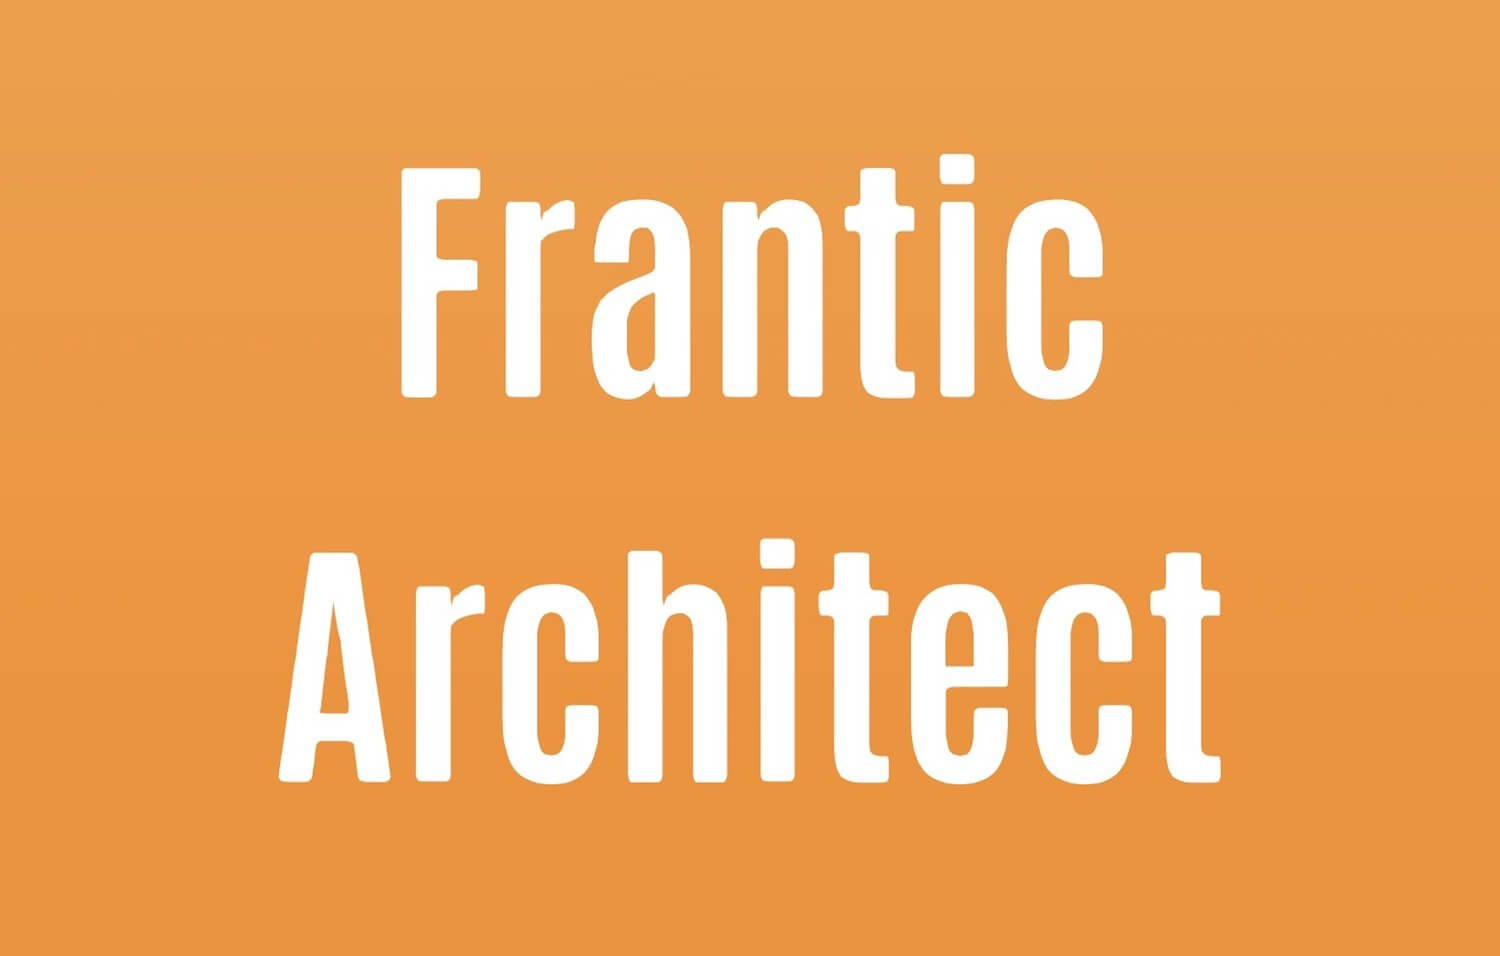 Frantic_Architect_1